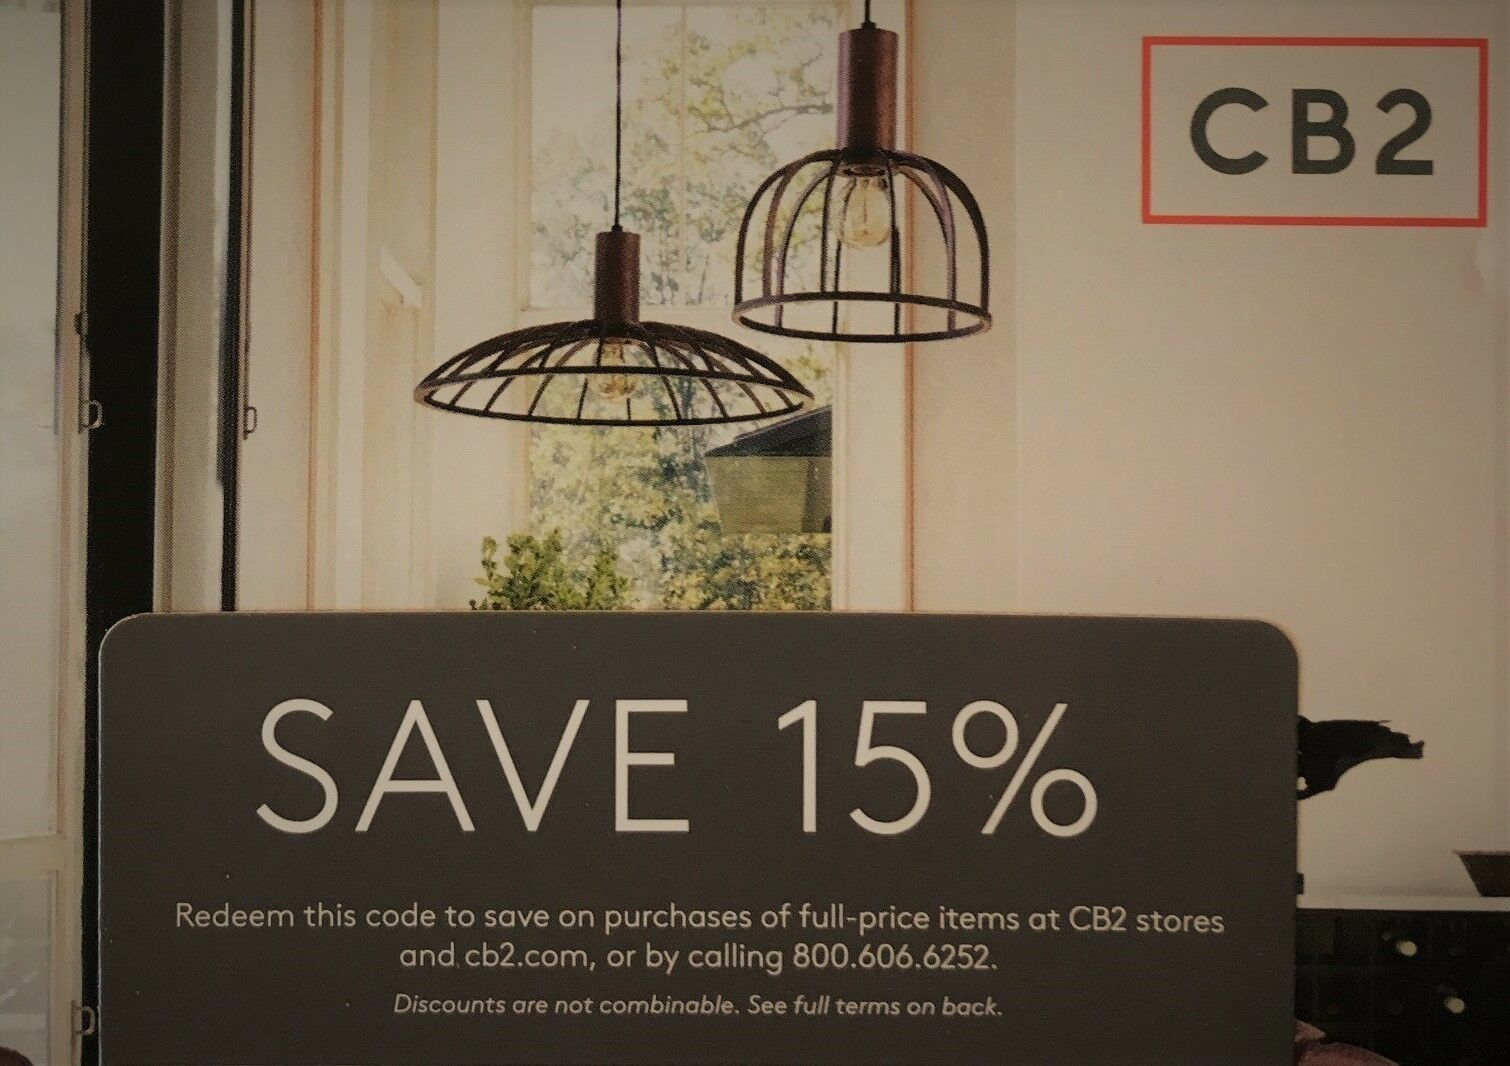 Купить CB2 - CB2 - 1coupon for 15% off purchase in store or online at cb2.com - Exp. 8/31/20